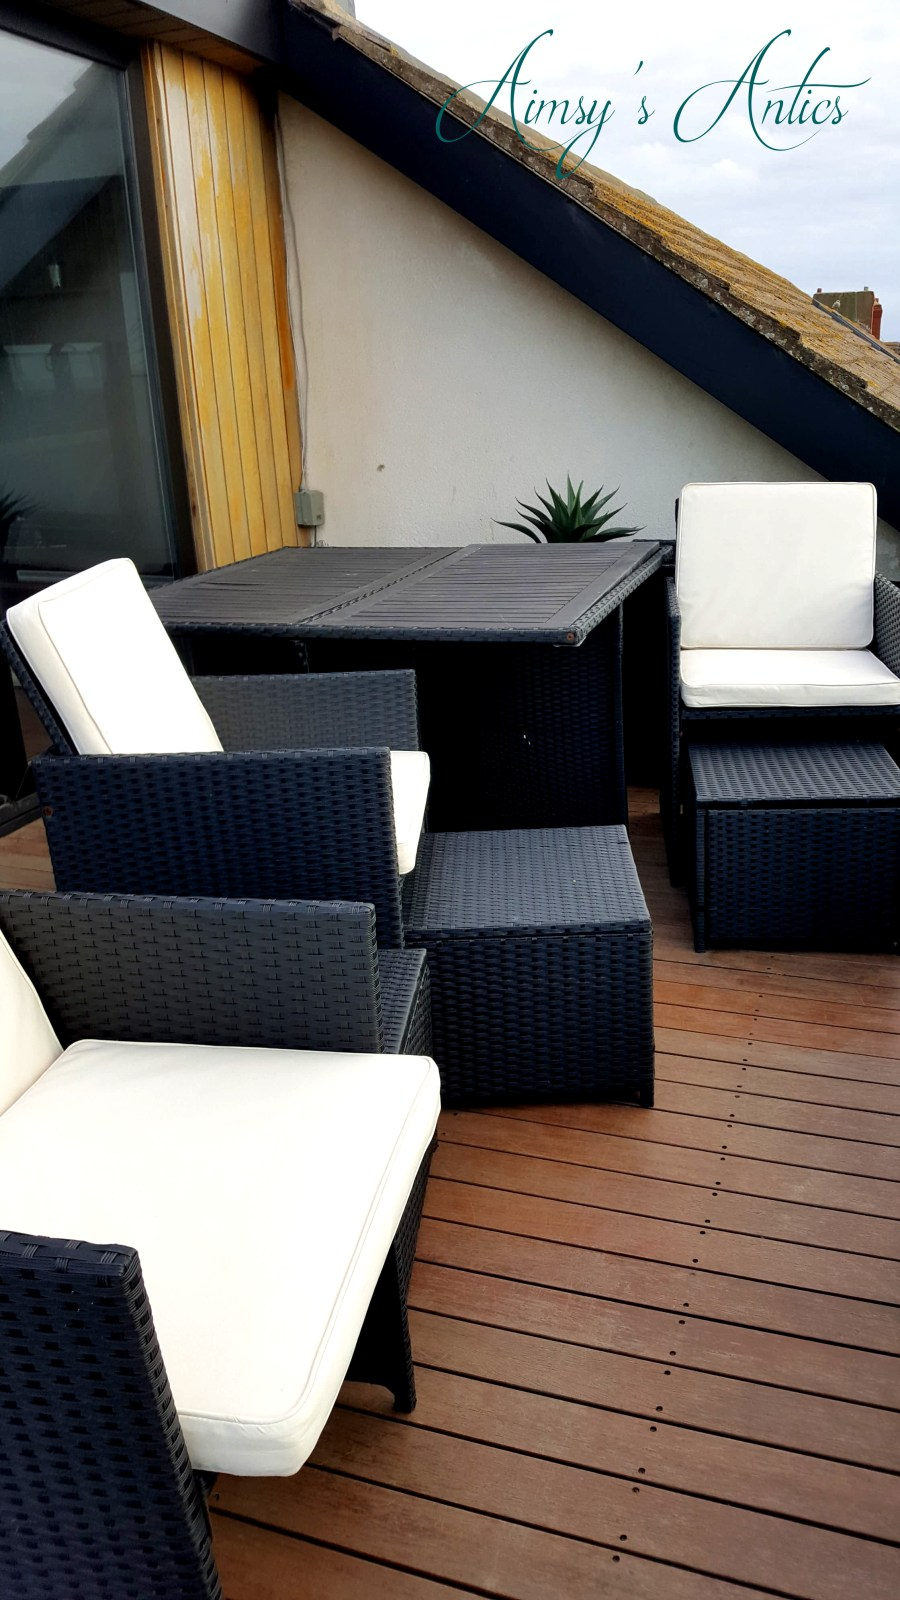 Image of the balcony area at the High-end beachside house with wicker garden furniture